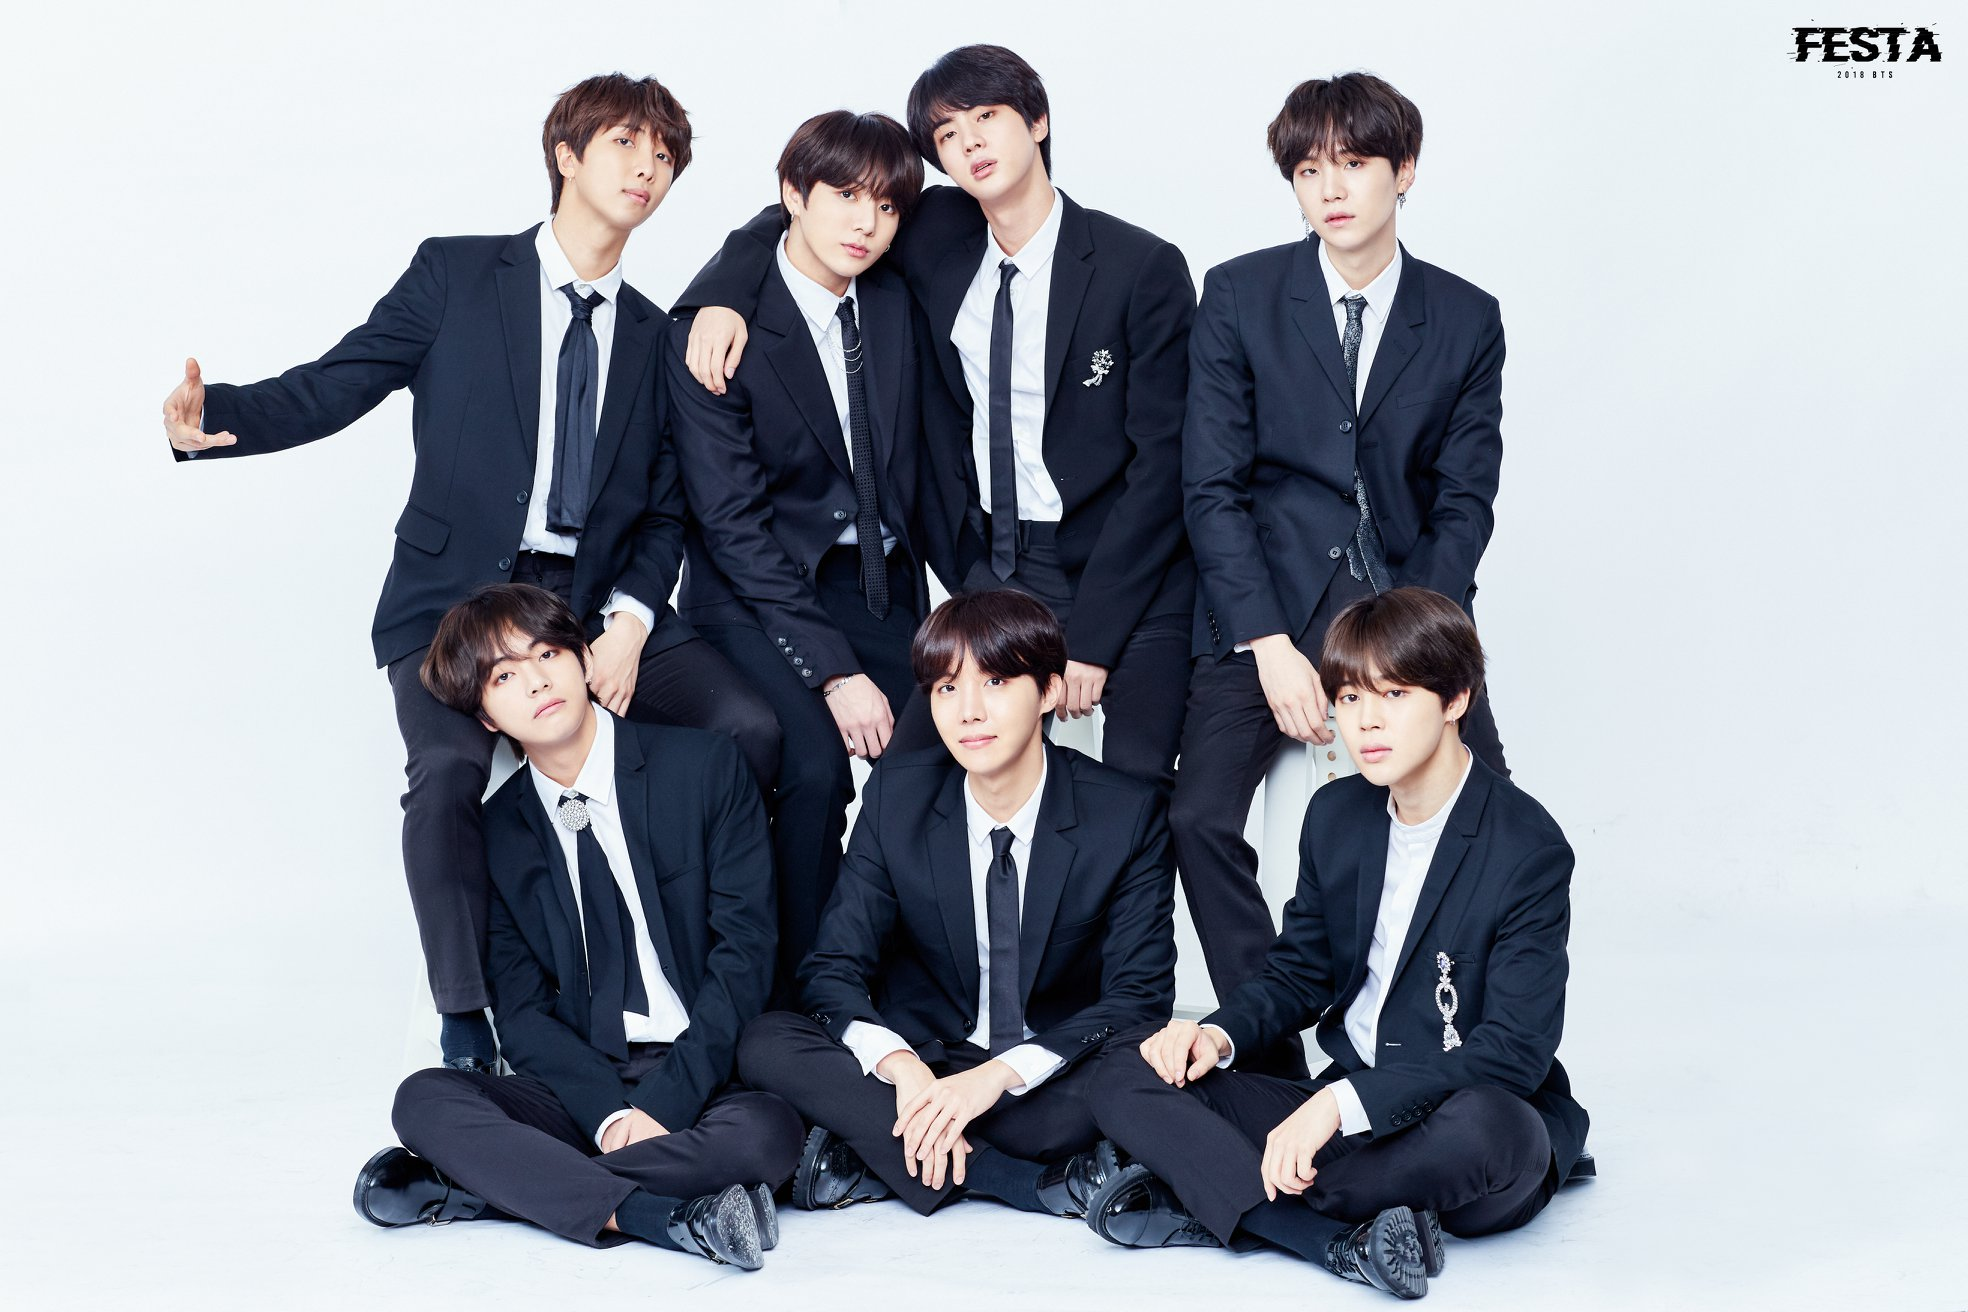 2018 BTS FESTA] 2018 BTS Family Photograph (1/2) - BTS Photo